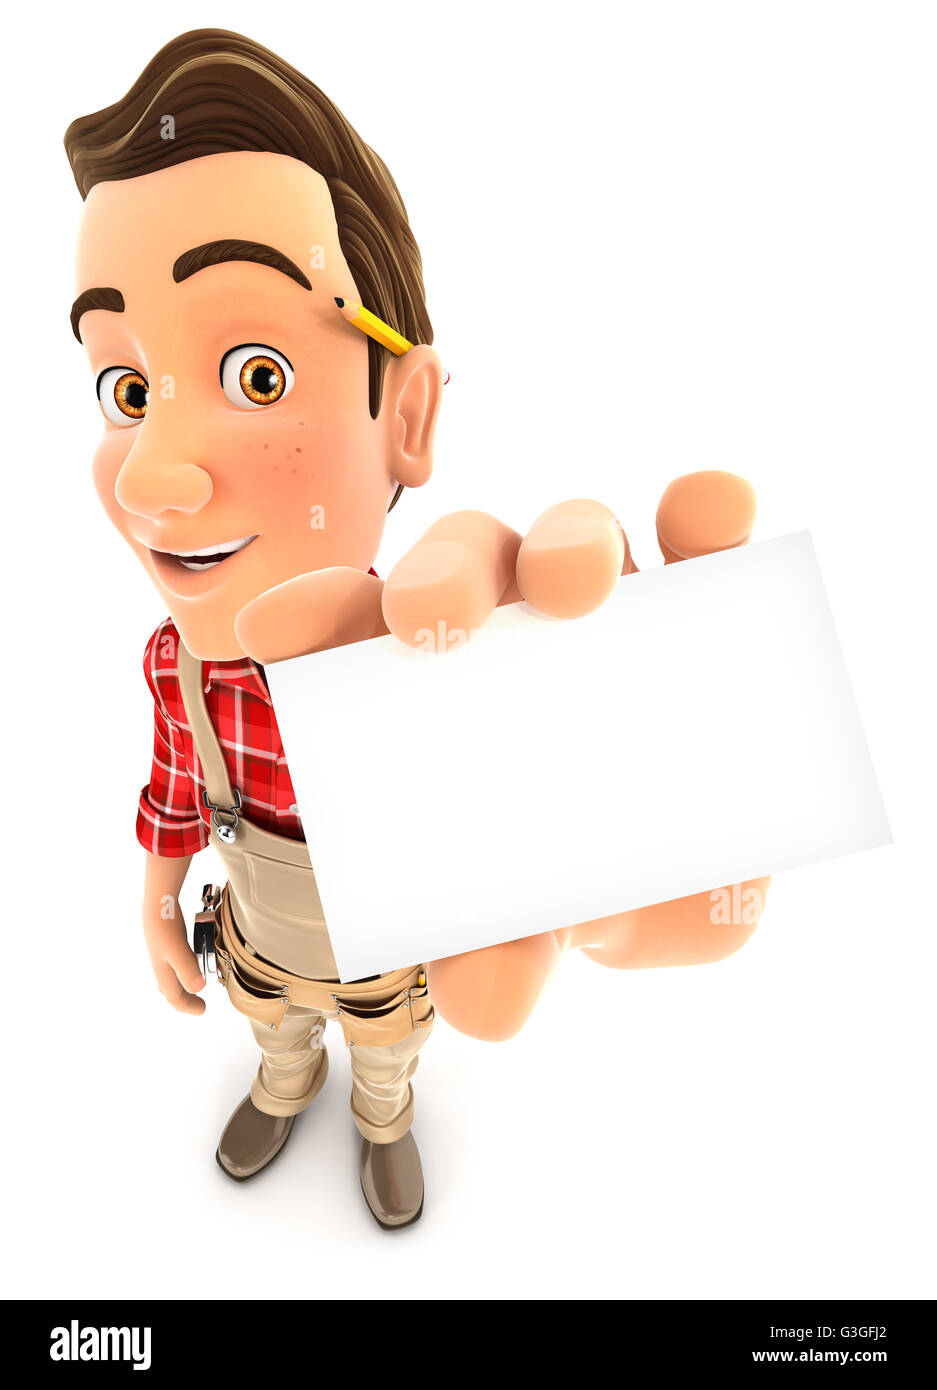 3d handyman holding company card, illustration with isolated white background Stock Photo